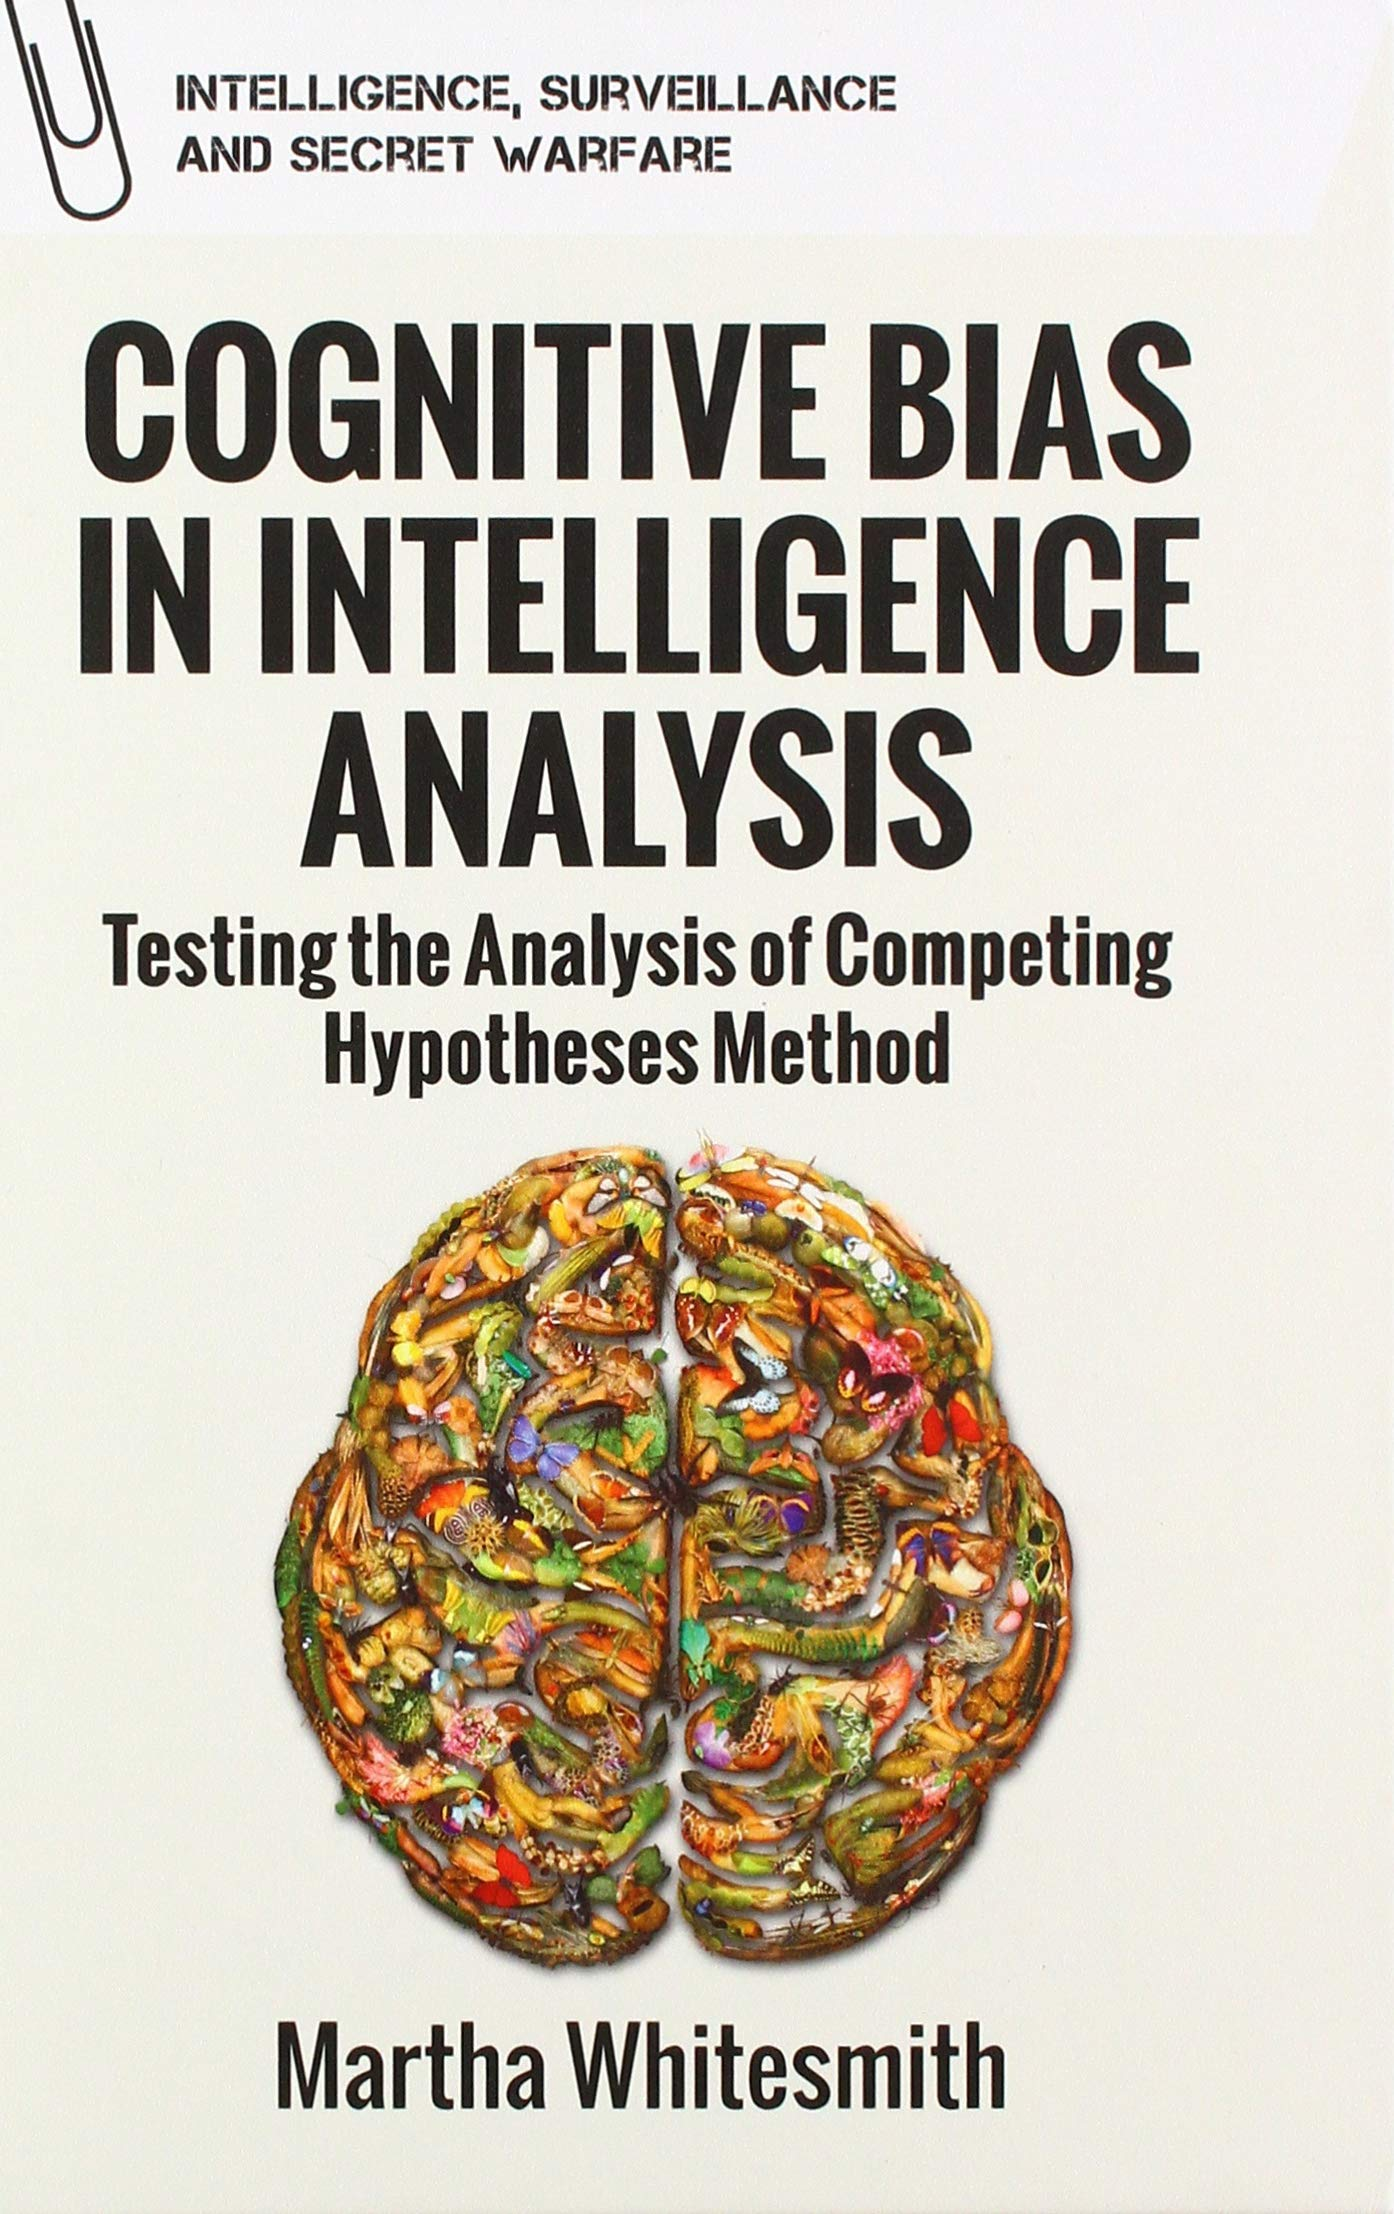 [#INTELLIGENCE] Livre: «Cognitive Bias in Intelligence Analysis: Testing the Analysis of Competing Hypotheses Method (Intelligence, Surveillance and Secret Warfare)»